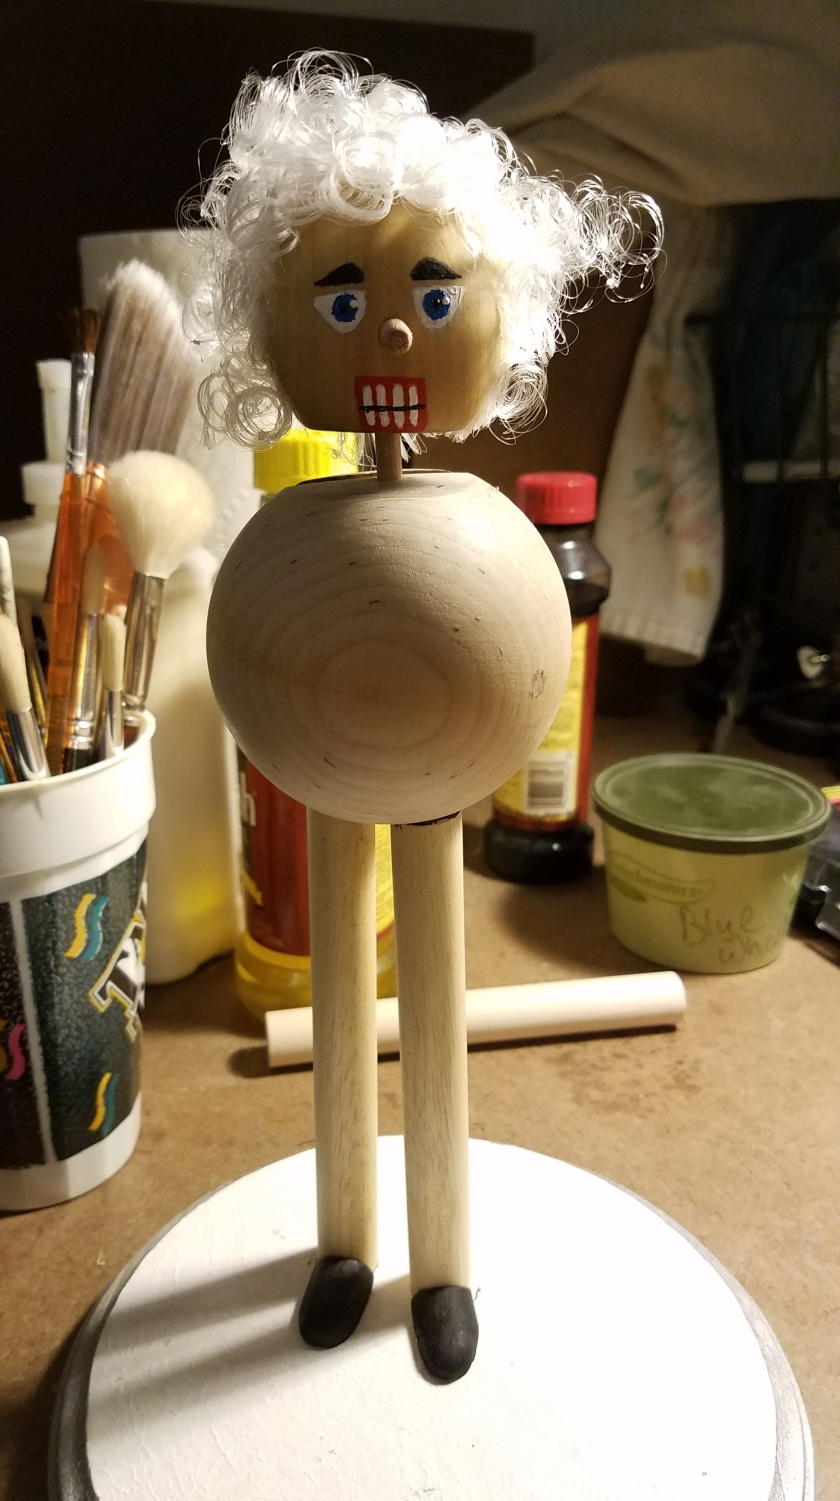 Santa Nutcracker - Assembly